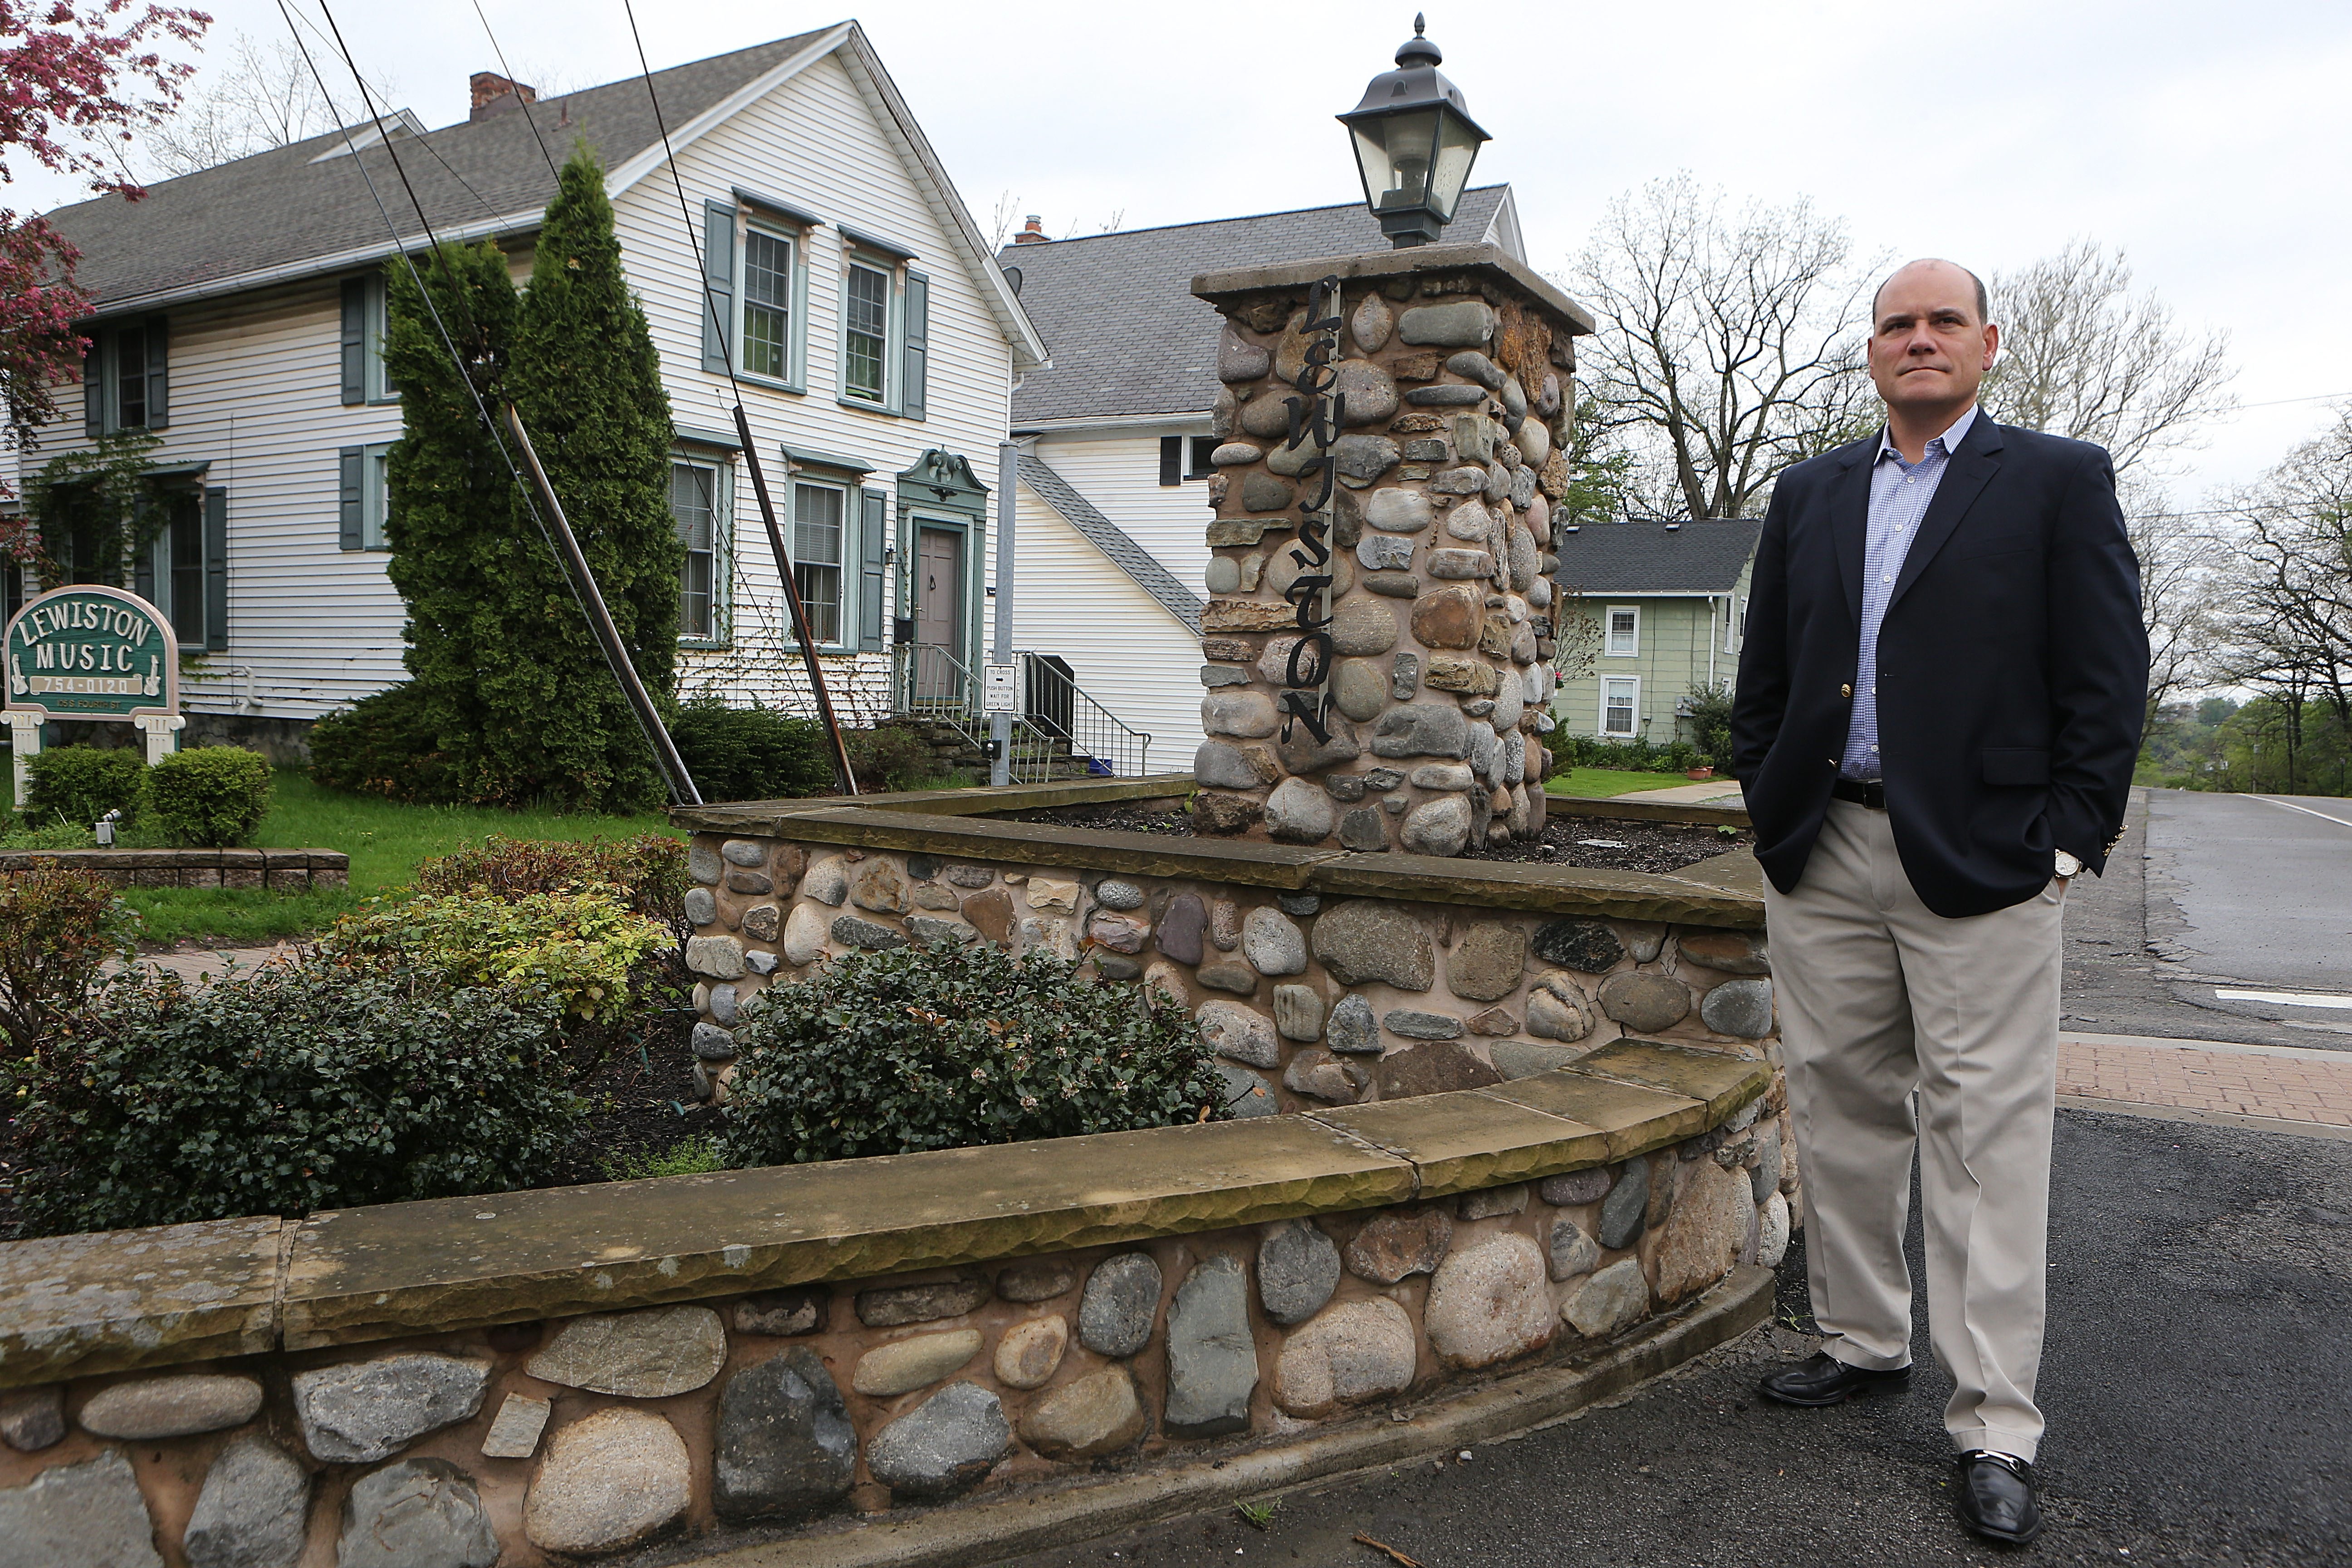 Russ Conrad has been investing in Lewiston properties and has donated a stone wall he had constructed to the village.